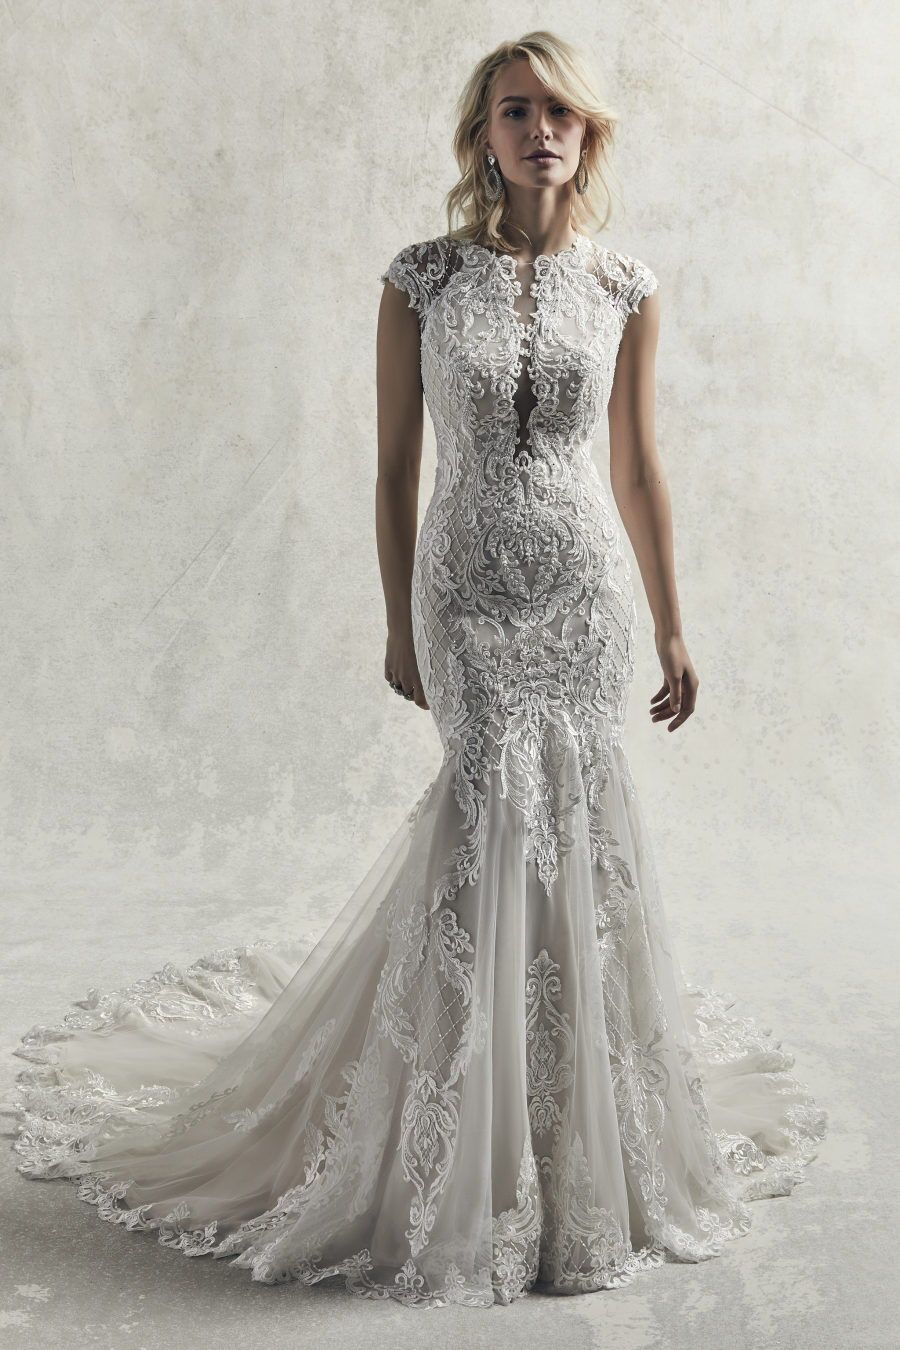 Sottero And Midgley Chauncey An Ultra Romantic Lace Wedding Gown This Soft Fit Sottero And Midgley Wedding Dresses Wedding Dress Store Modest Bridal Gowns